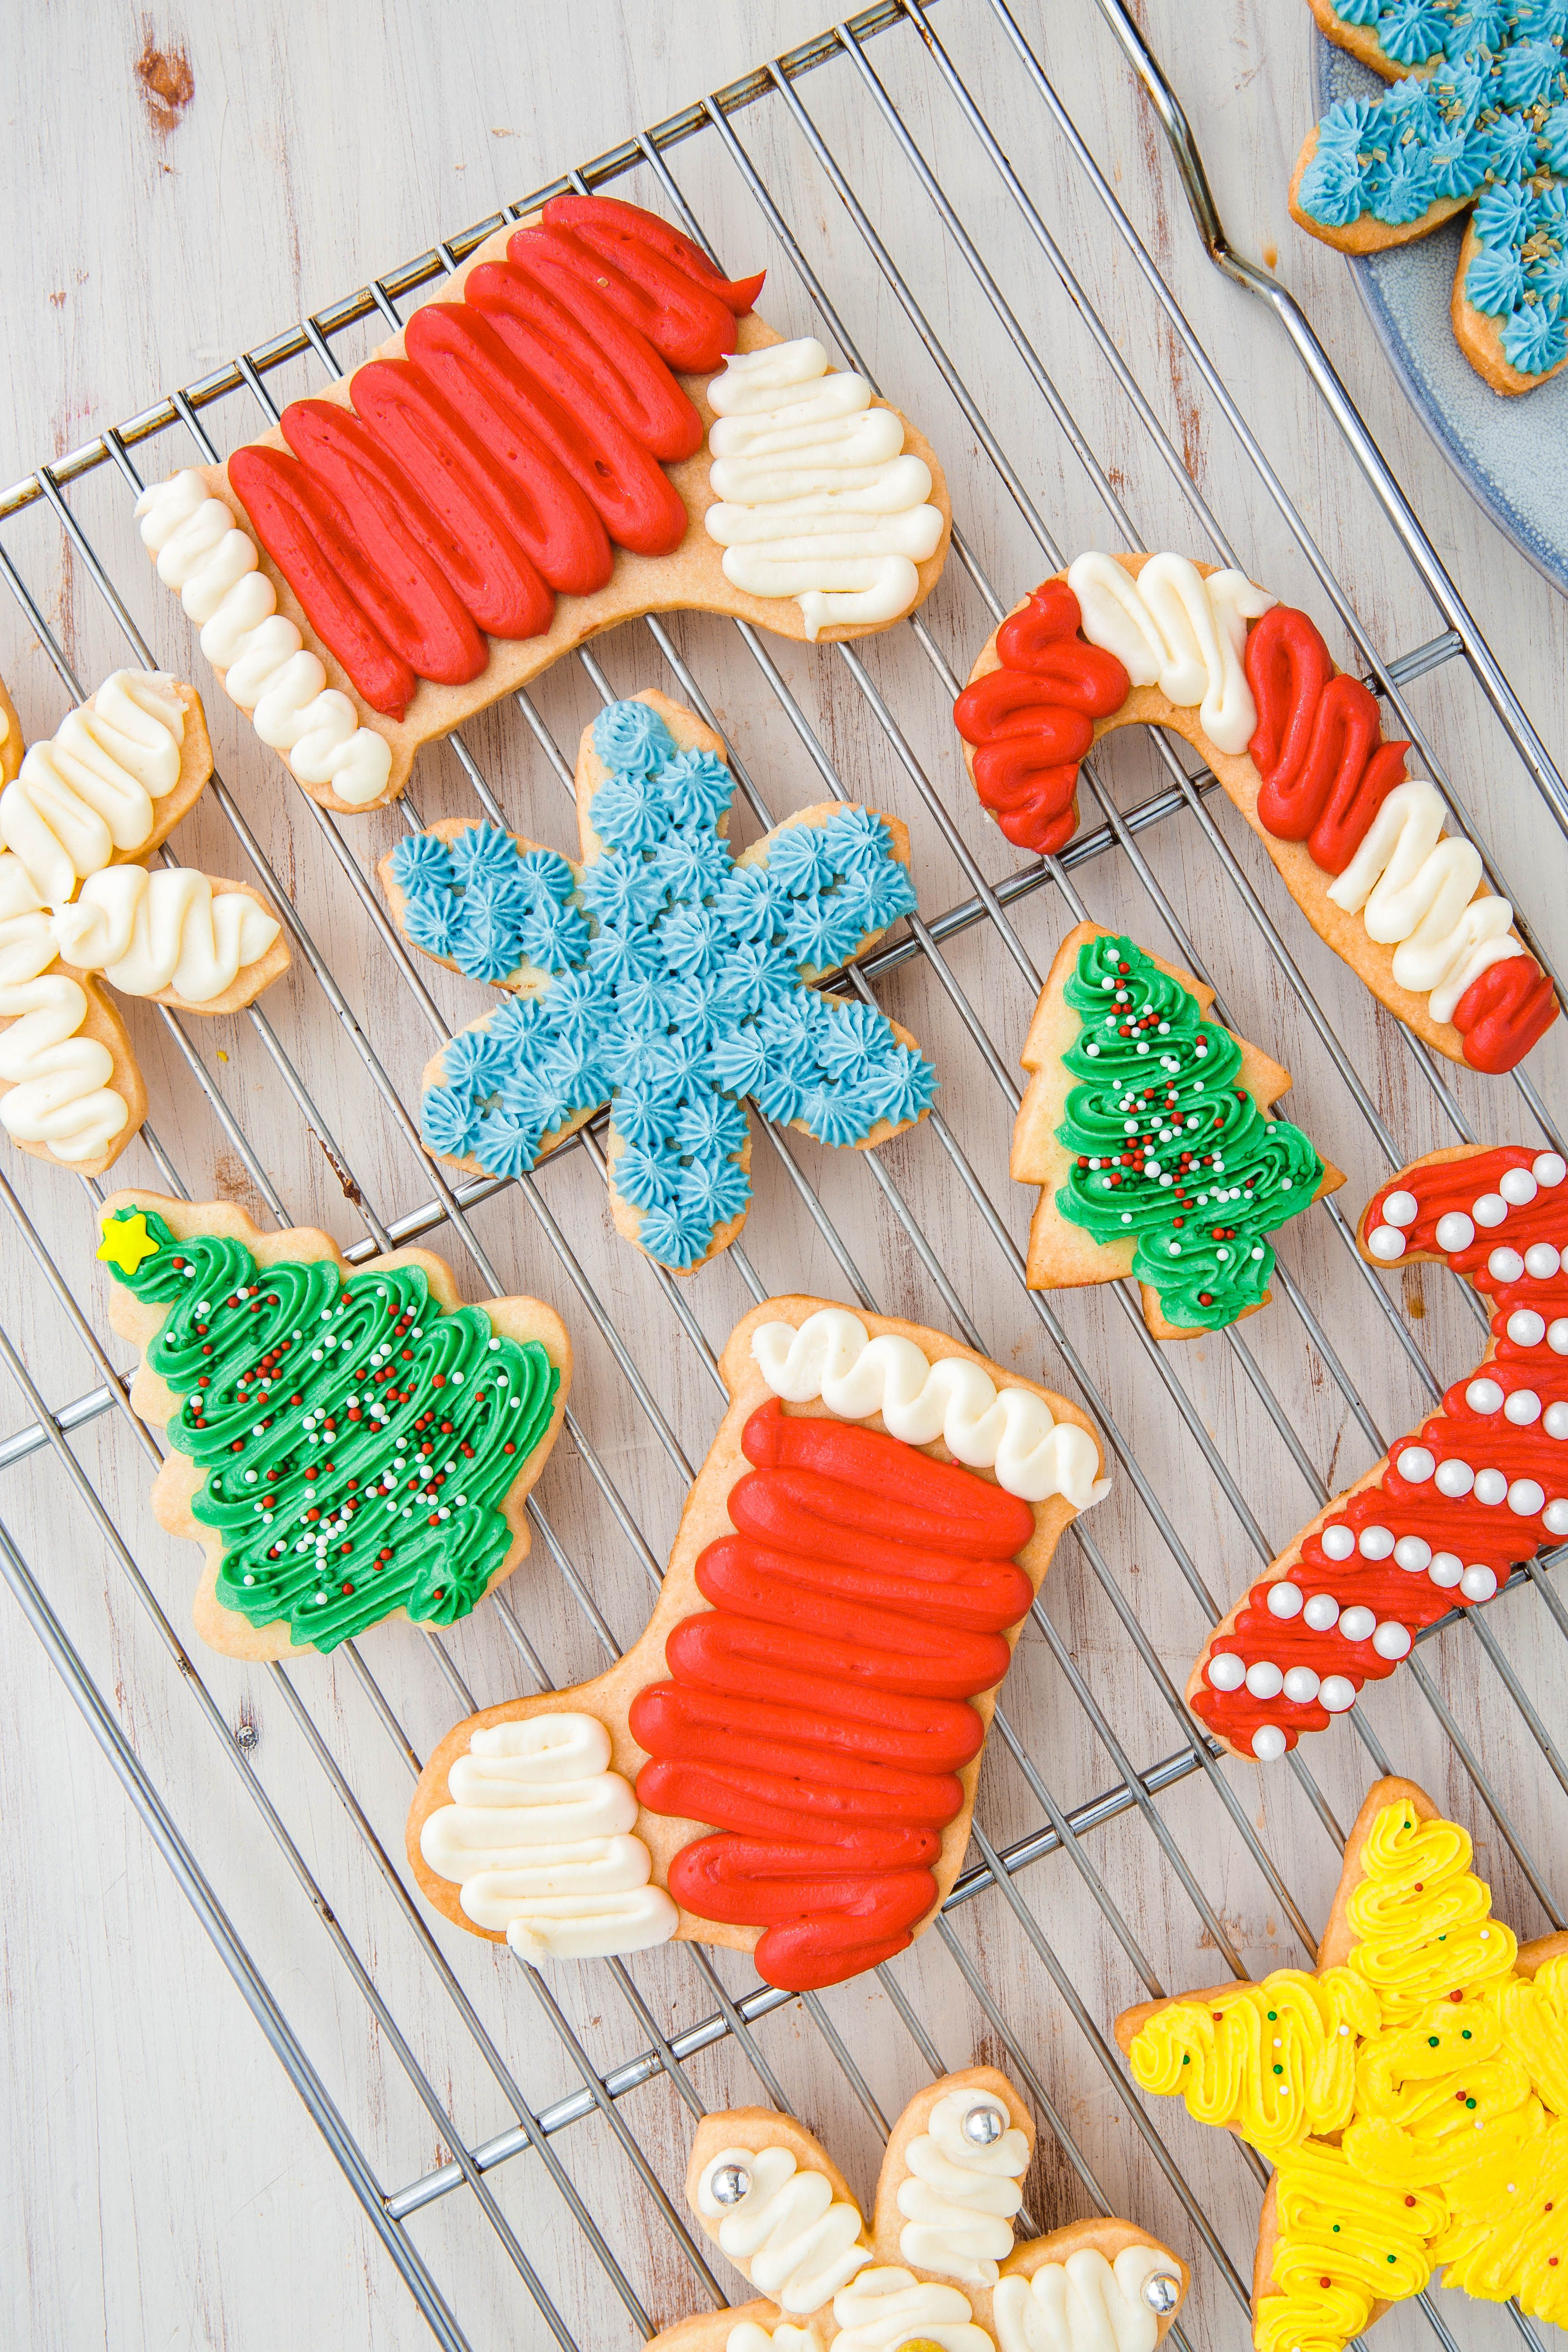 80 Best Christmas Desserts Recipes For Festive Holiday Desserts